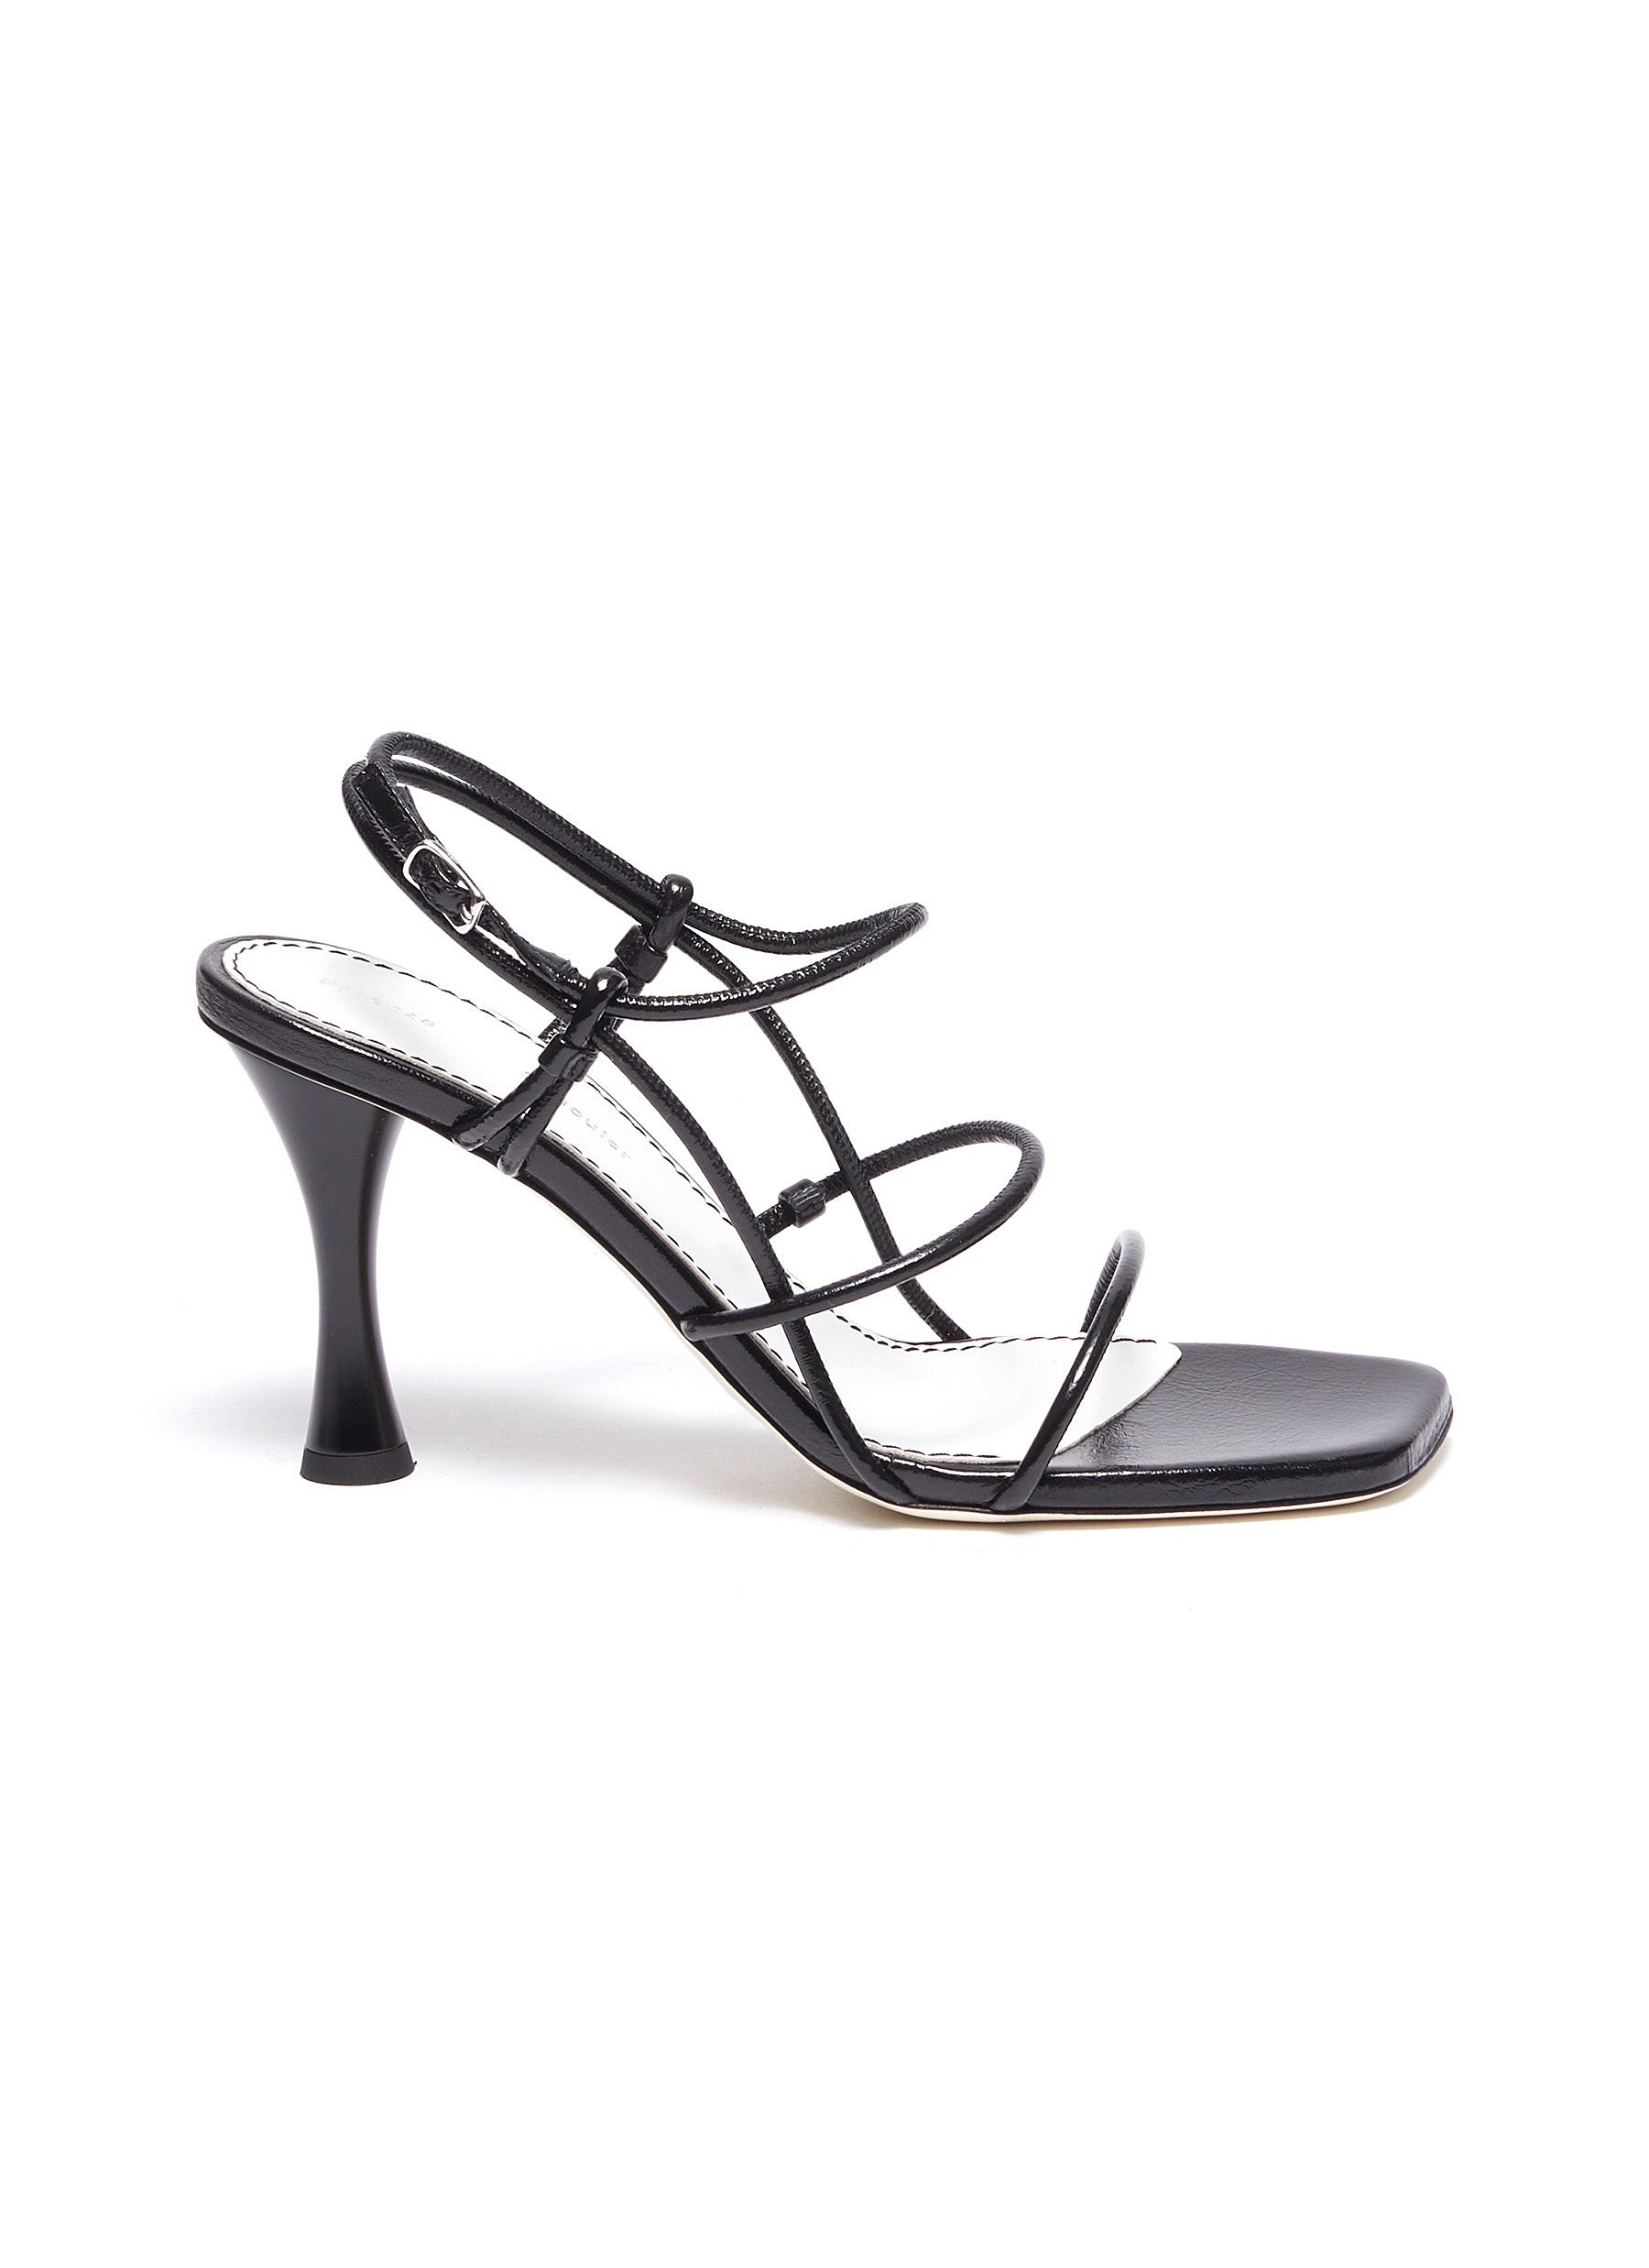 Proenza Schouler Strappy leather sandals